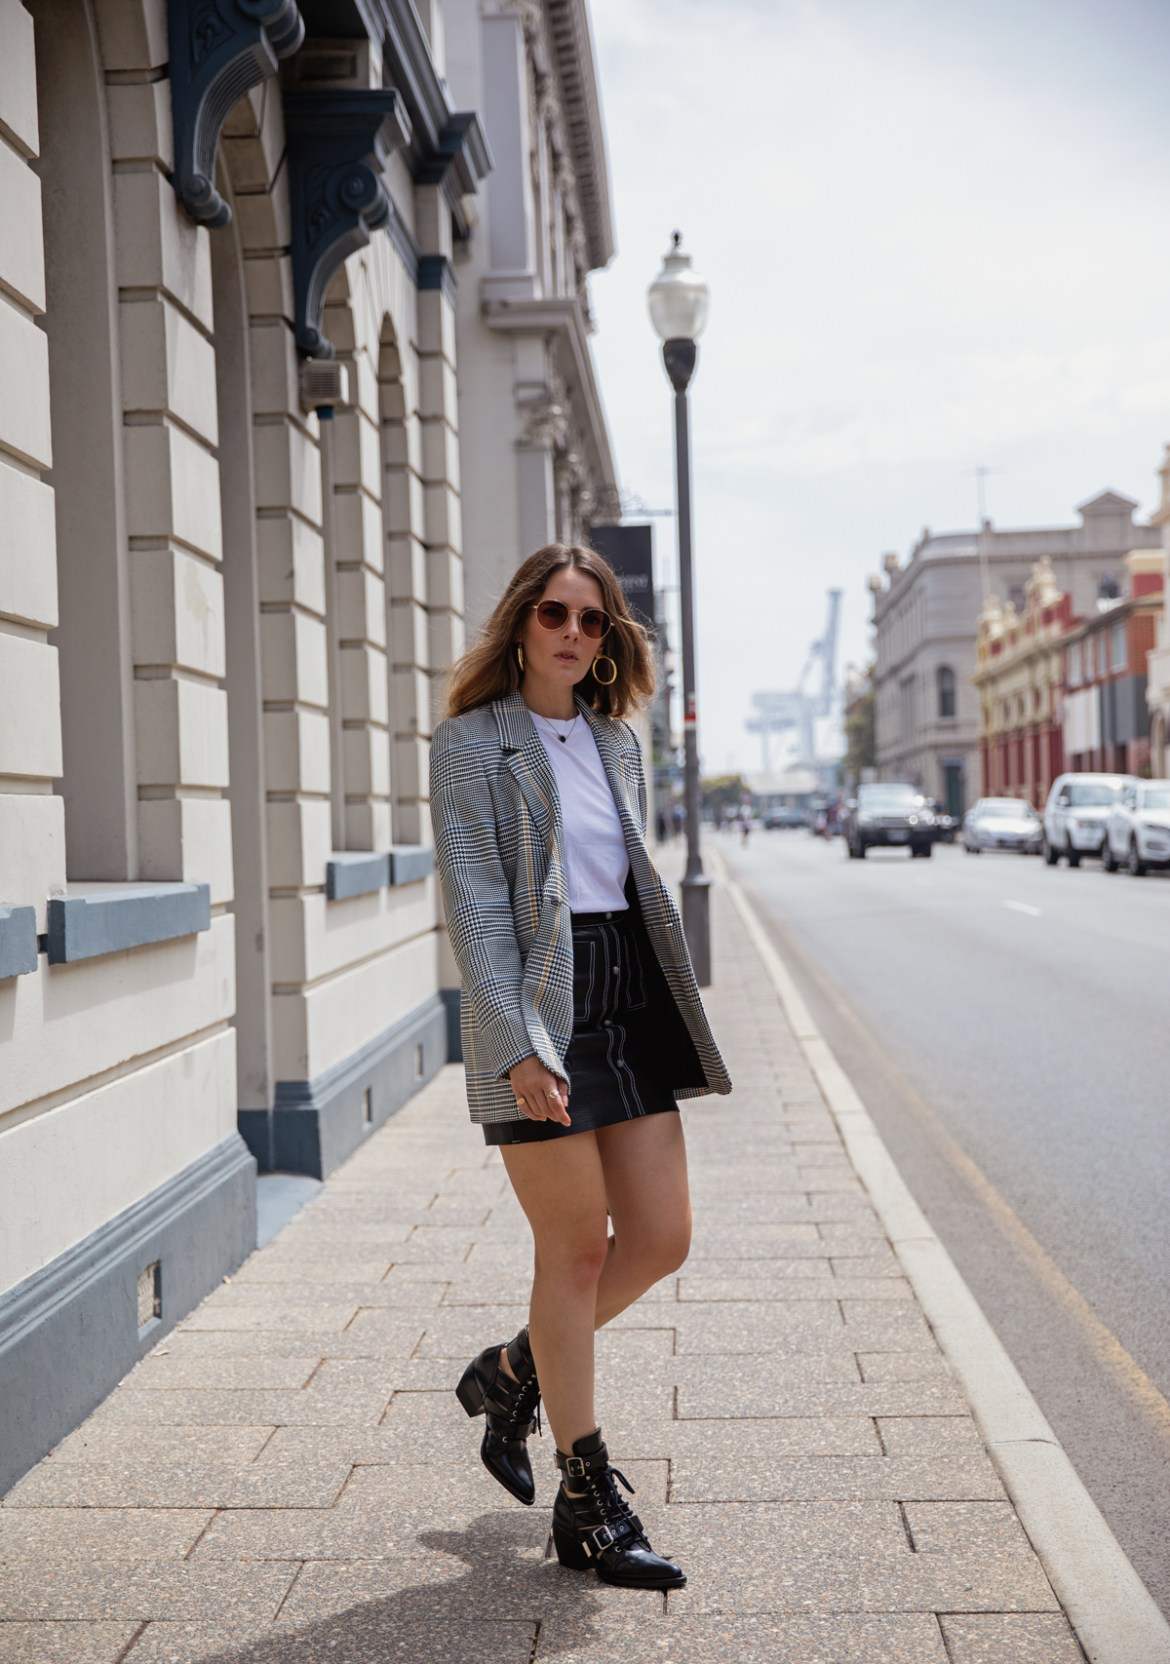 Anine Bing Madeline Blazer in check worn by Inspiring Wit with Shrimps beaded bag, Aje leather Shrimpton Mini skirt, Jac + Jack tee and Chloe Rylee boots